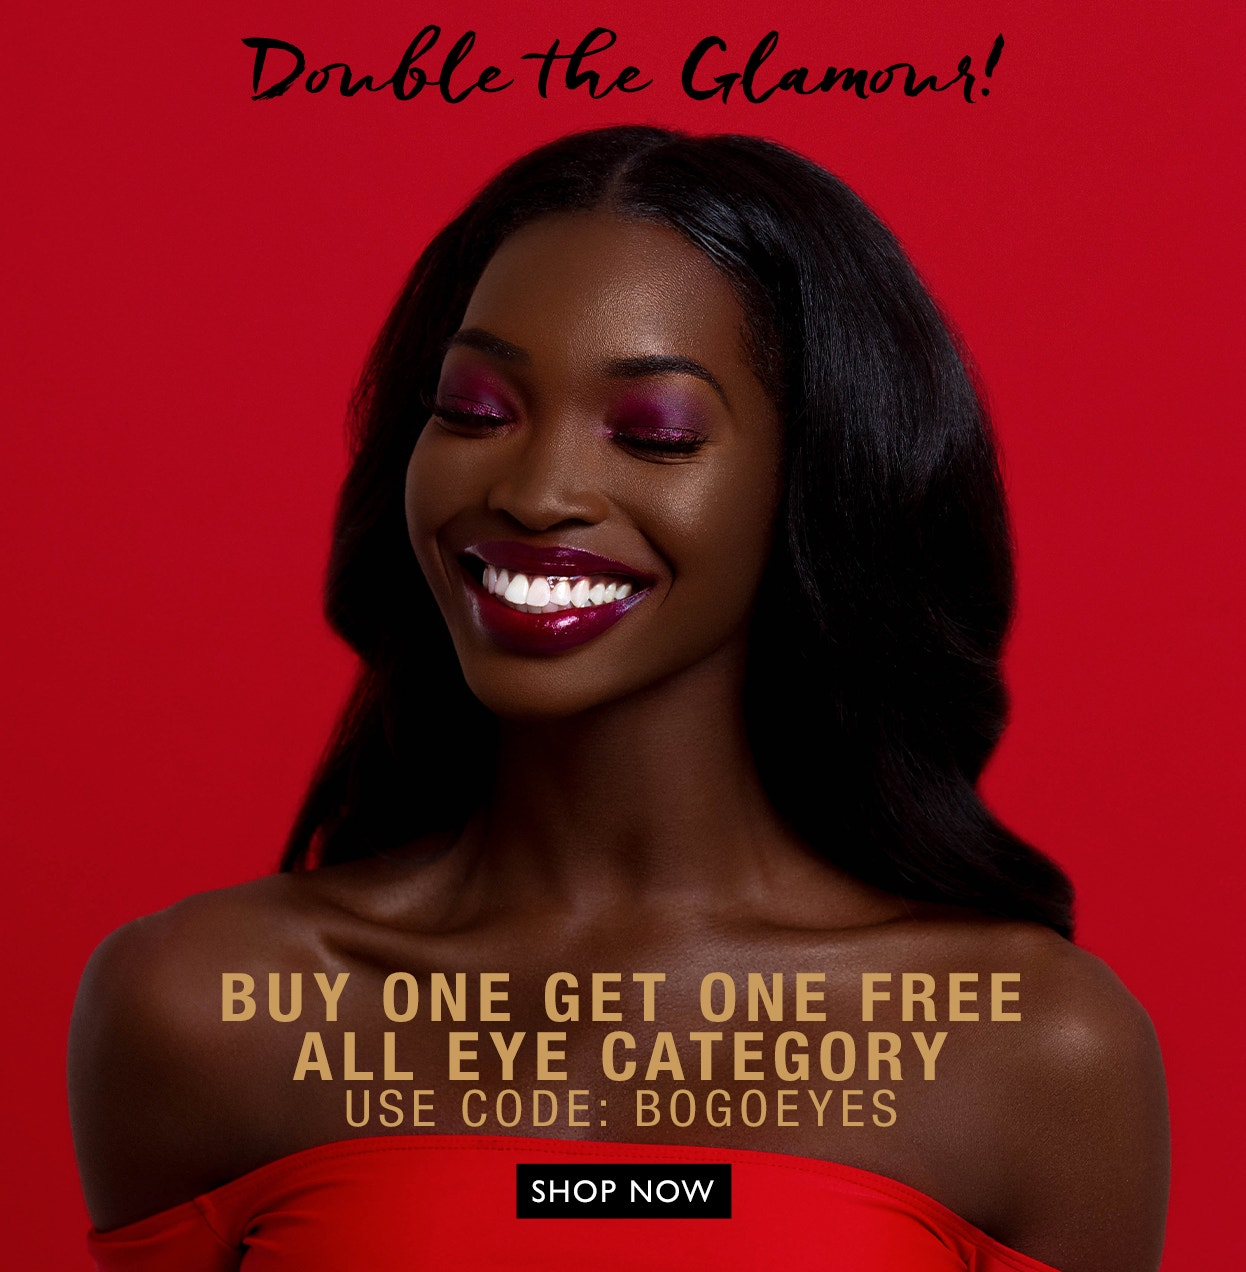 Double the Glamour - Buy One Get One Free All Eye Category | Use Code: BOGOEYES | Shop Now | Black Radiance | Model image with red background